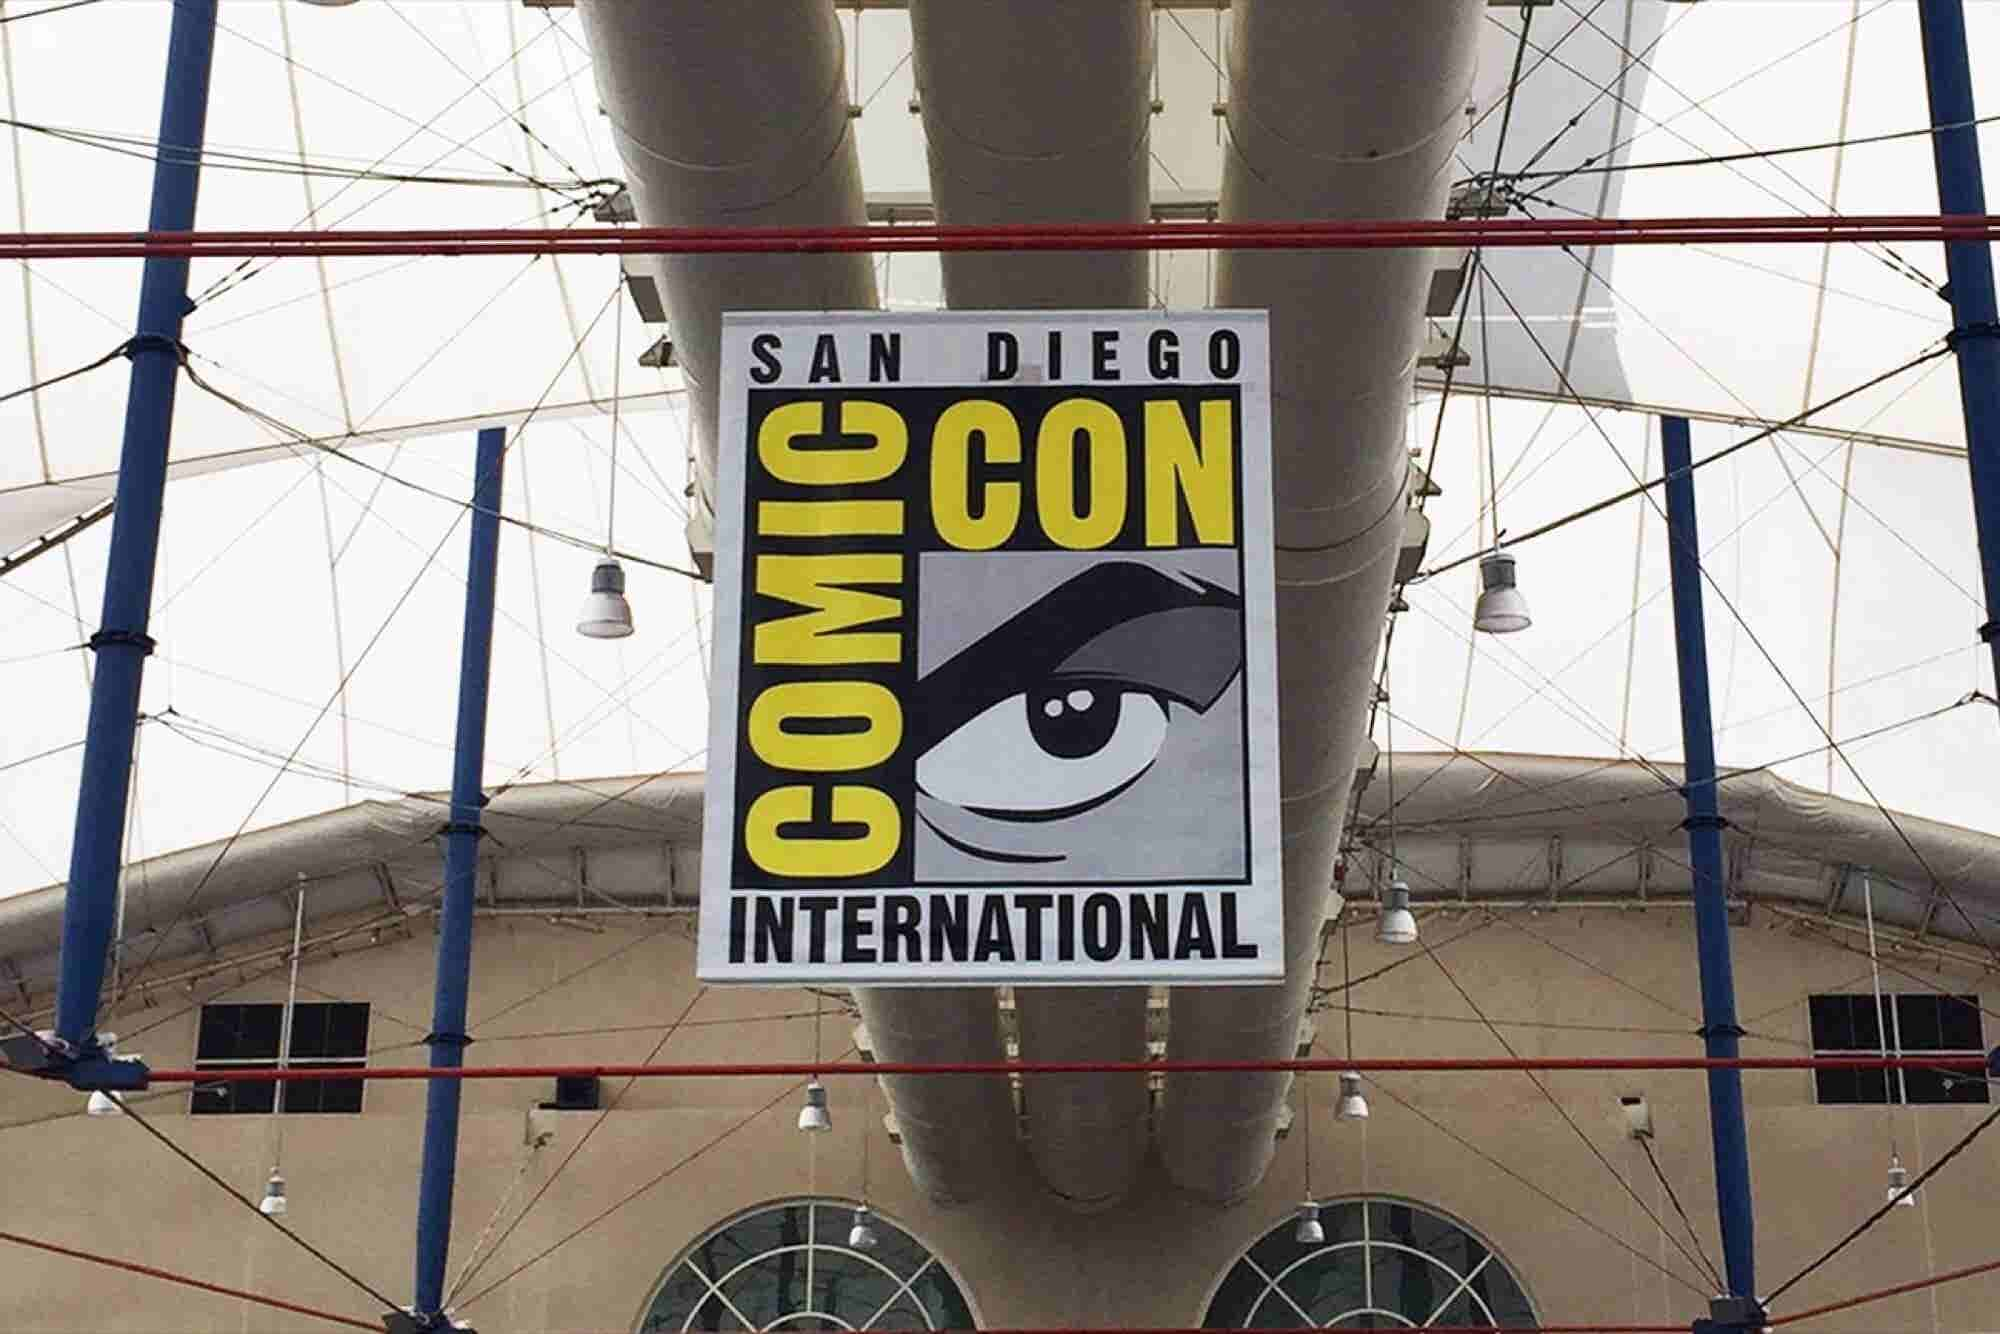 5 Coolest Marketing Ideas We Saw at San Diego Comic-Con 2016